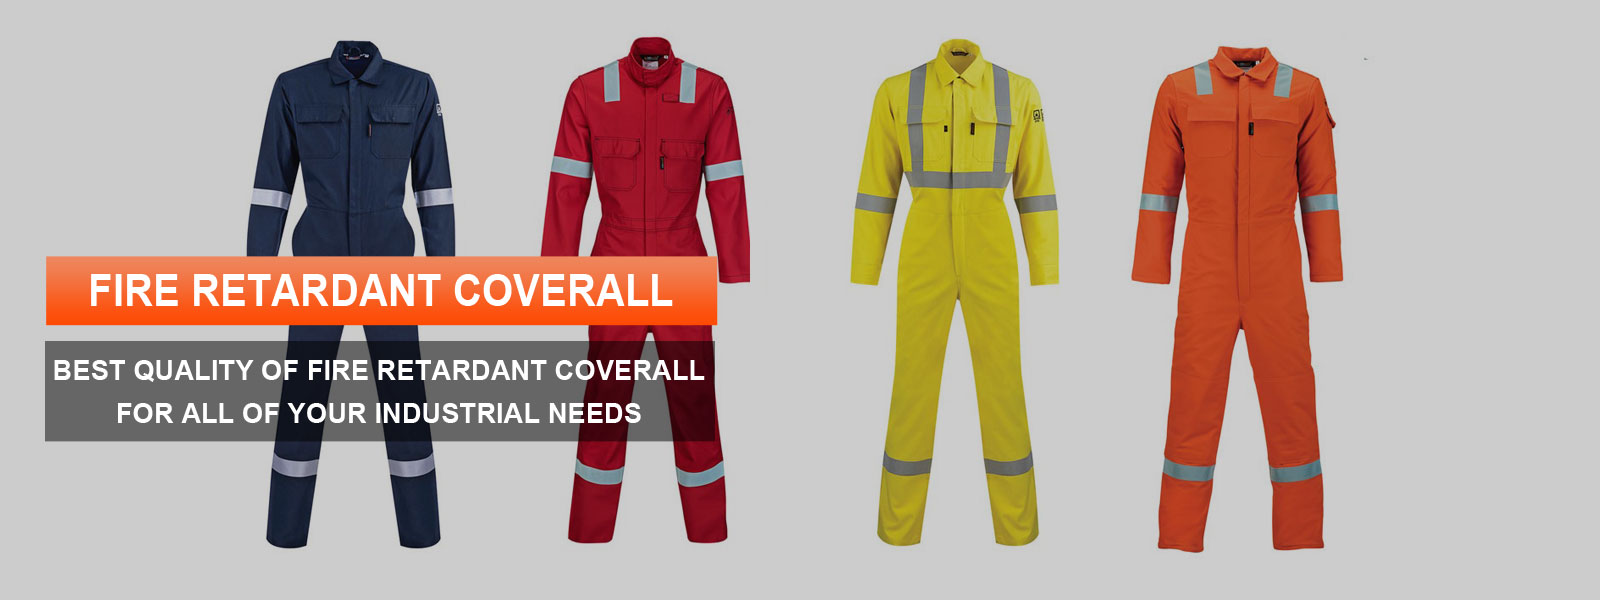 Fire Retardant Coverall Manufacturers in Jabalpur